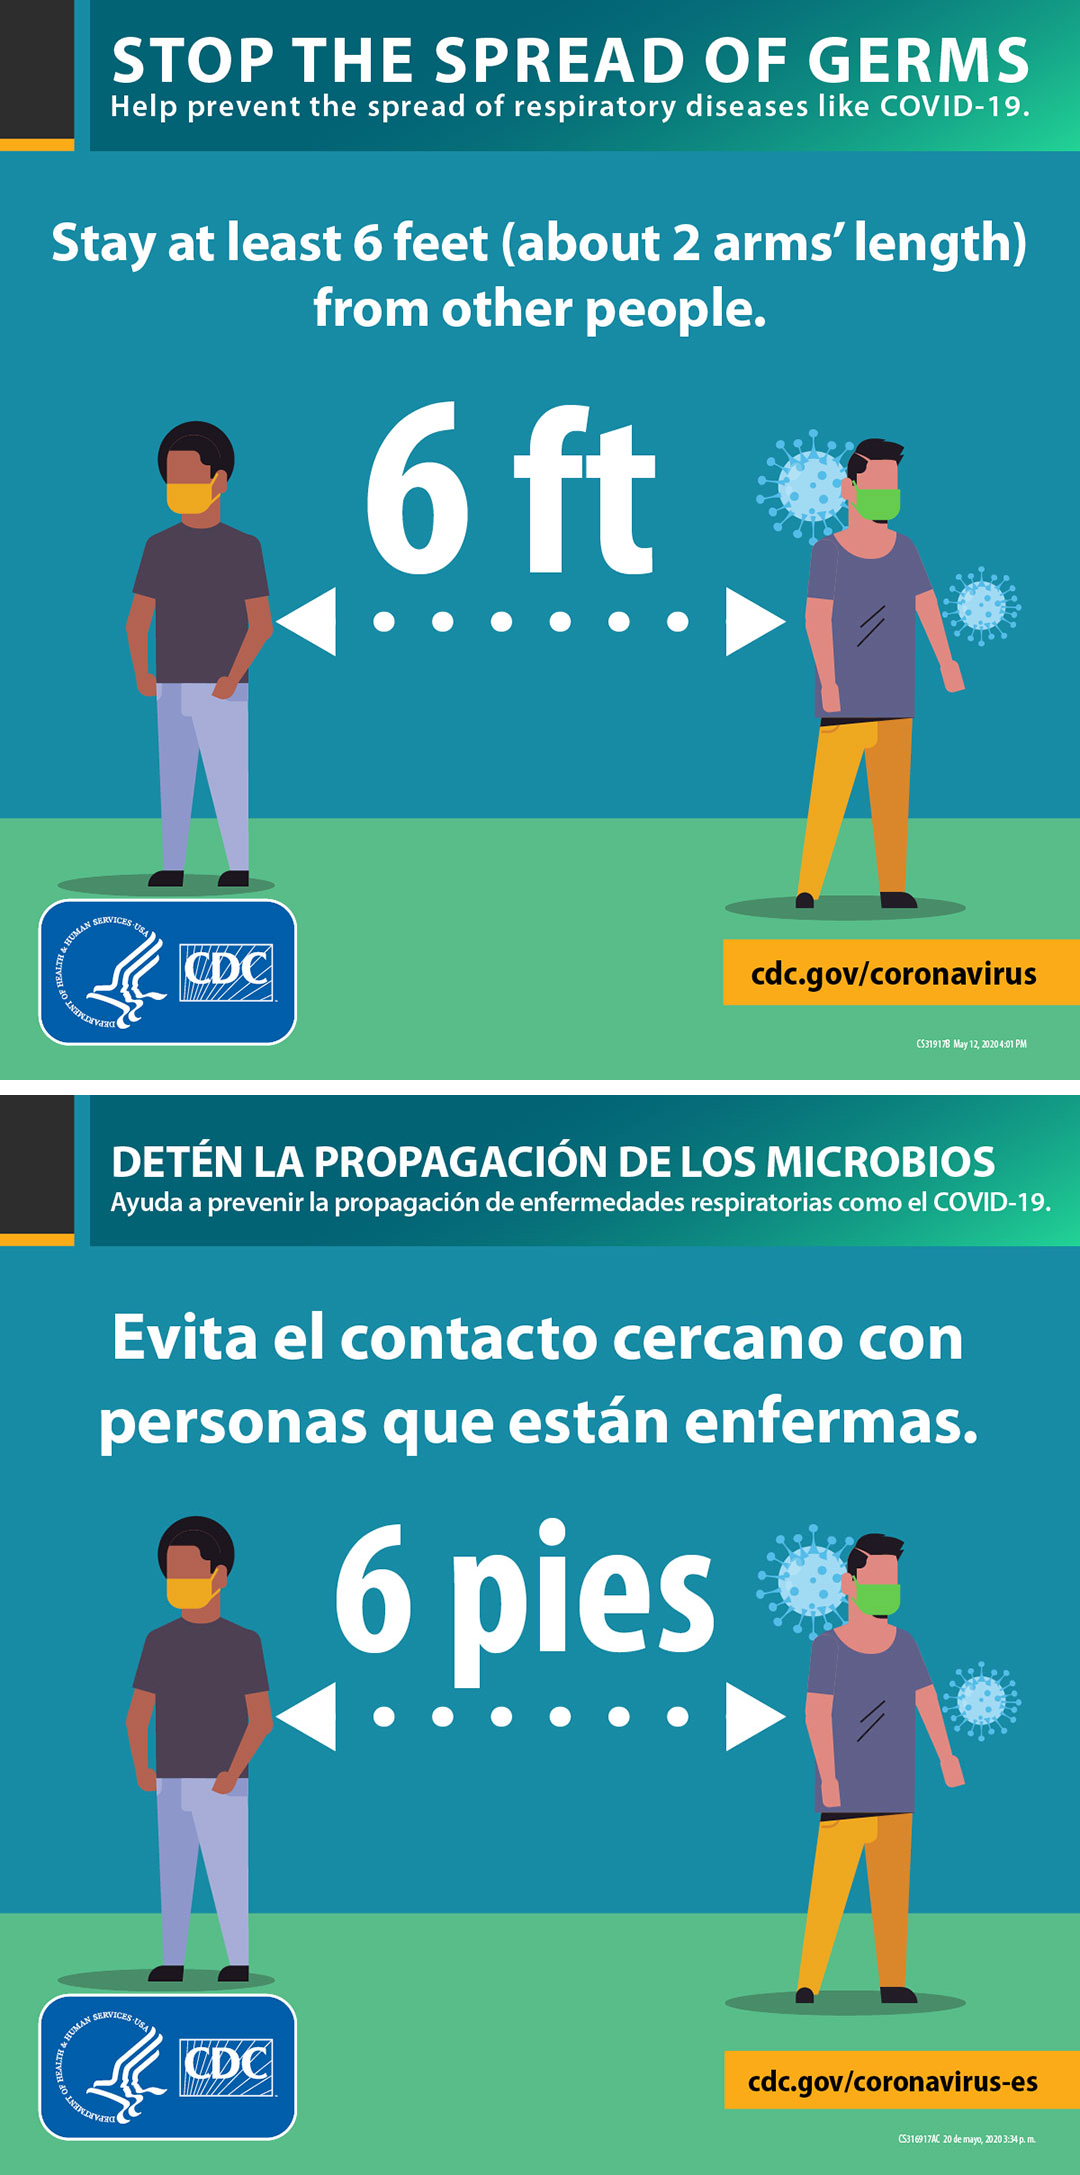 Stop the spread of germs from the CDC (cdc.gov/coronavirus | cdc.gov/coronavirus-es)